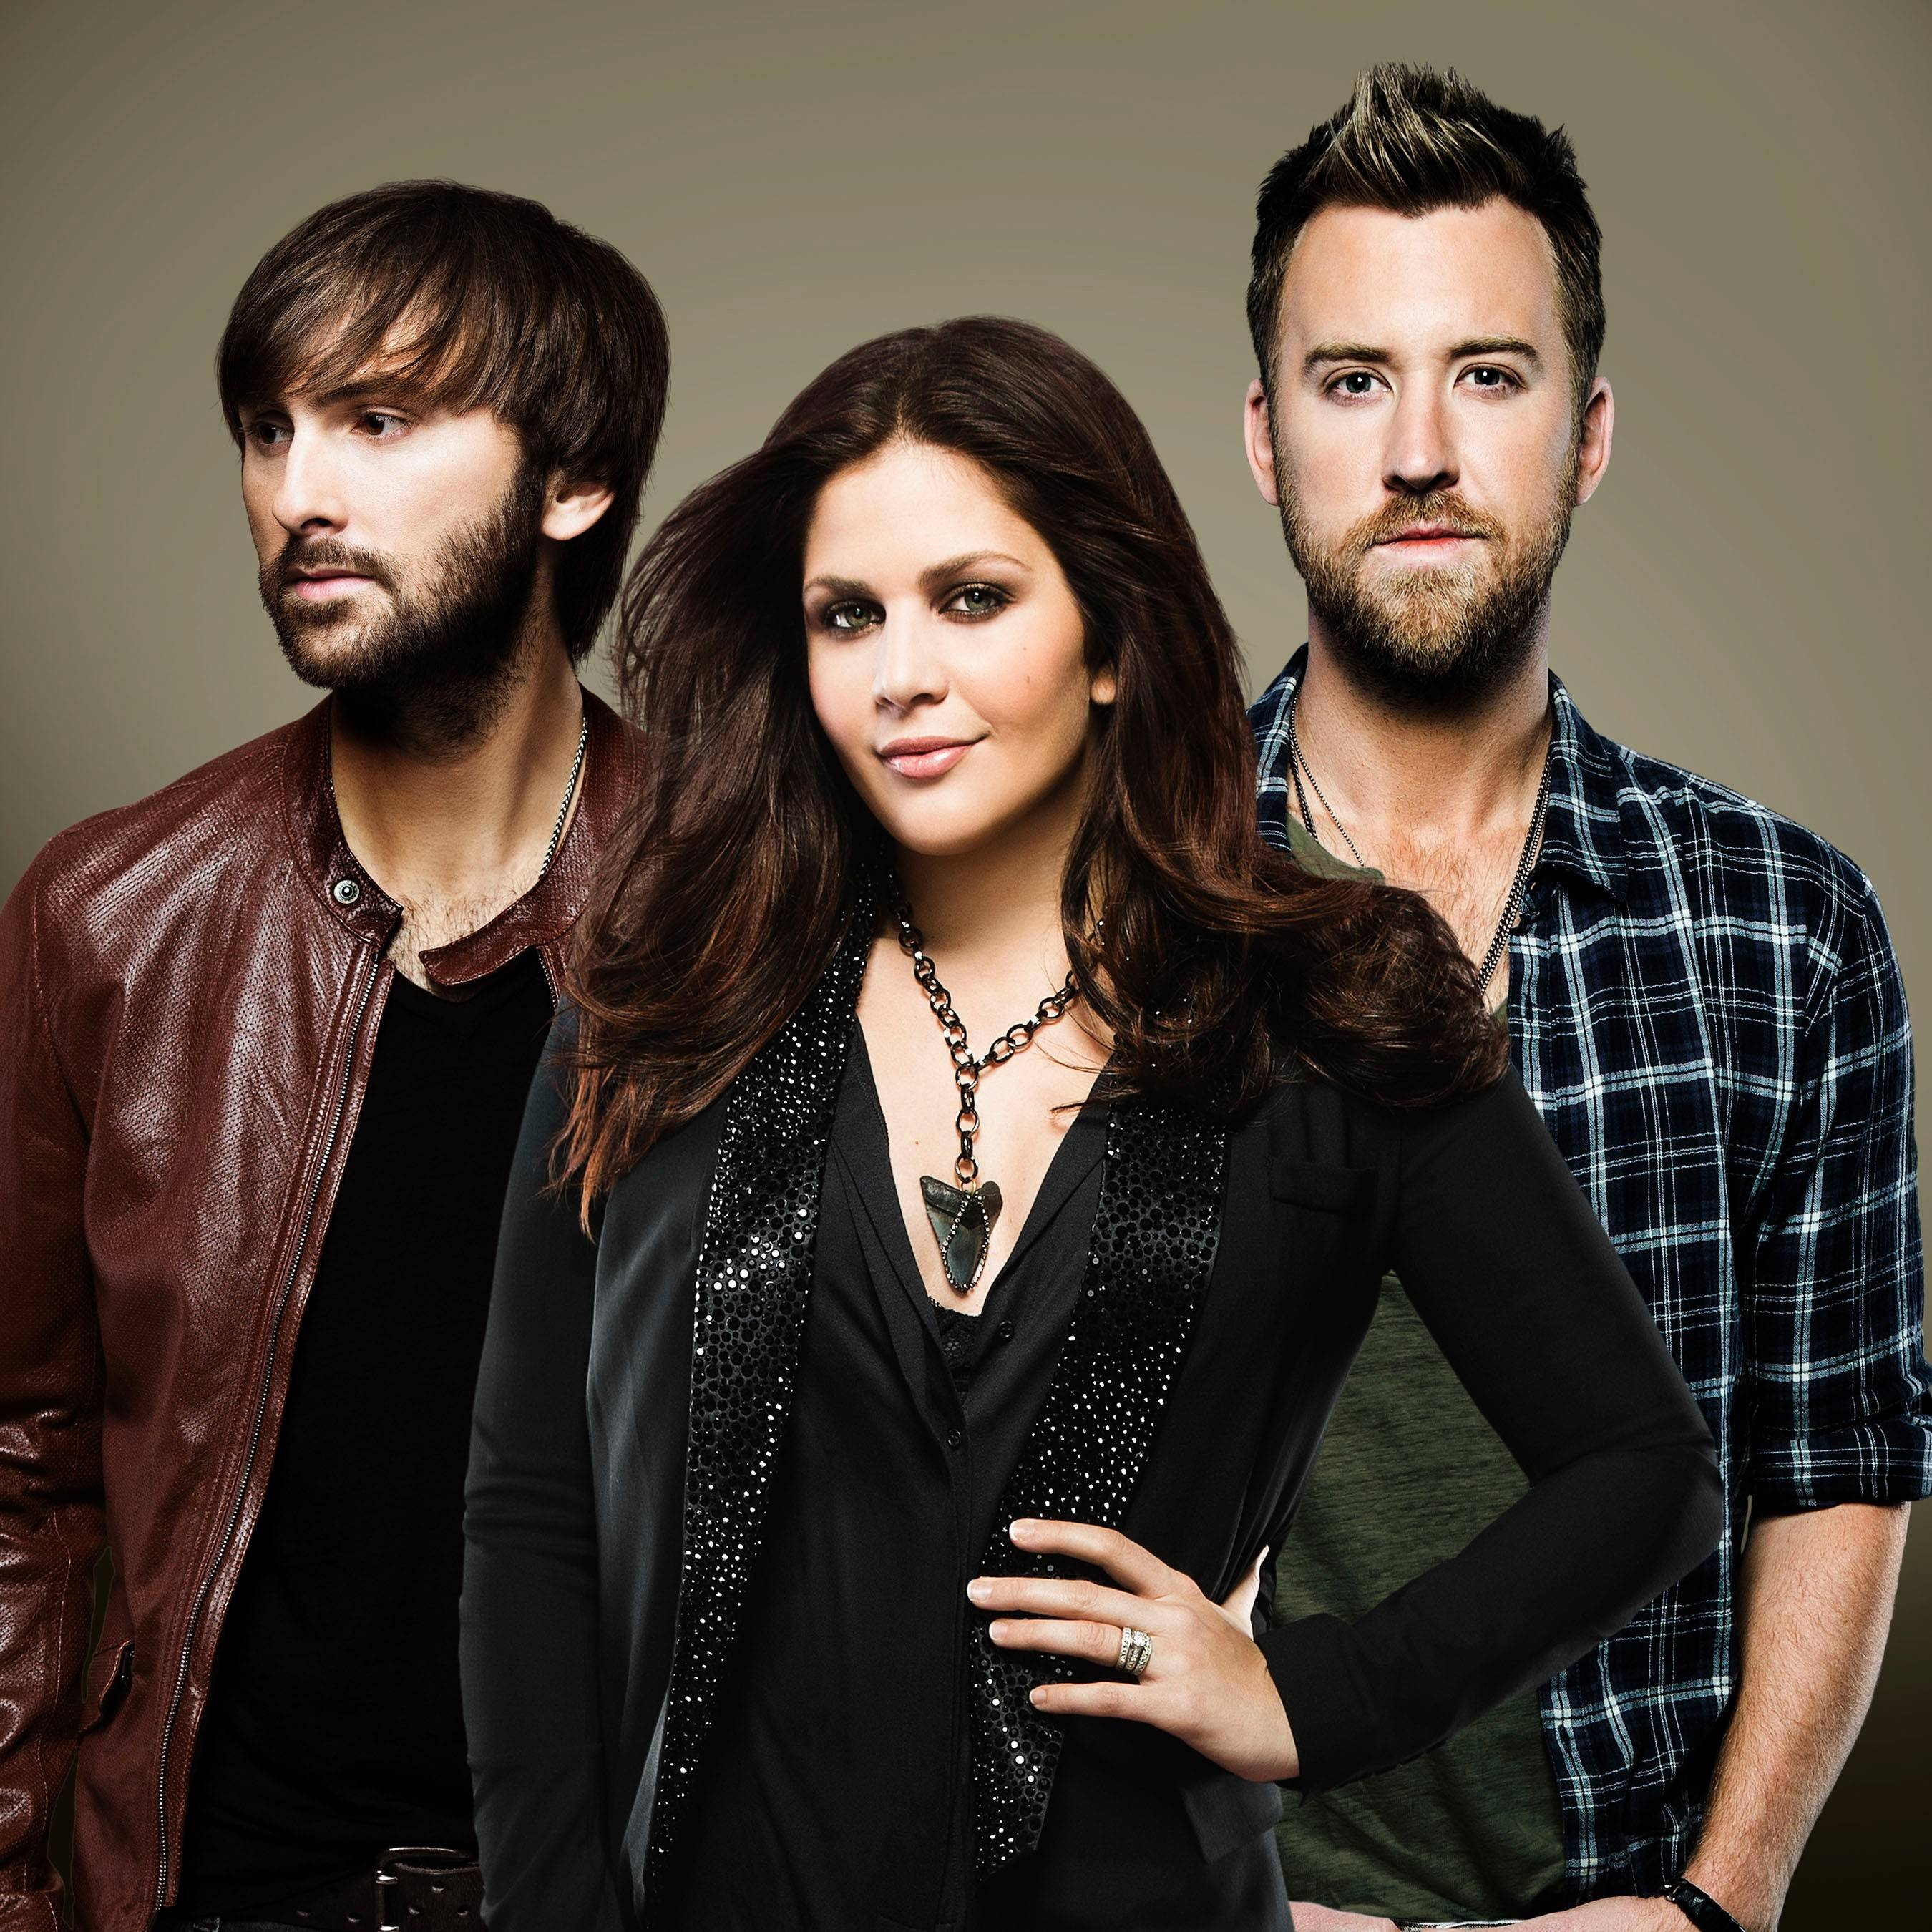 Lady Antebellum will headline RiverEdge Park in Aurora this summer.